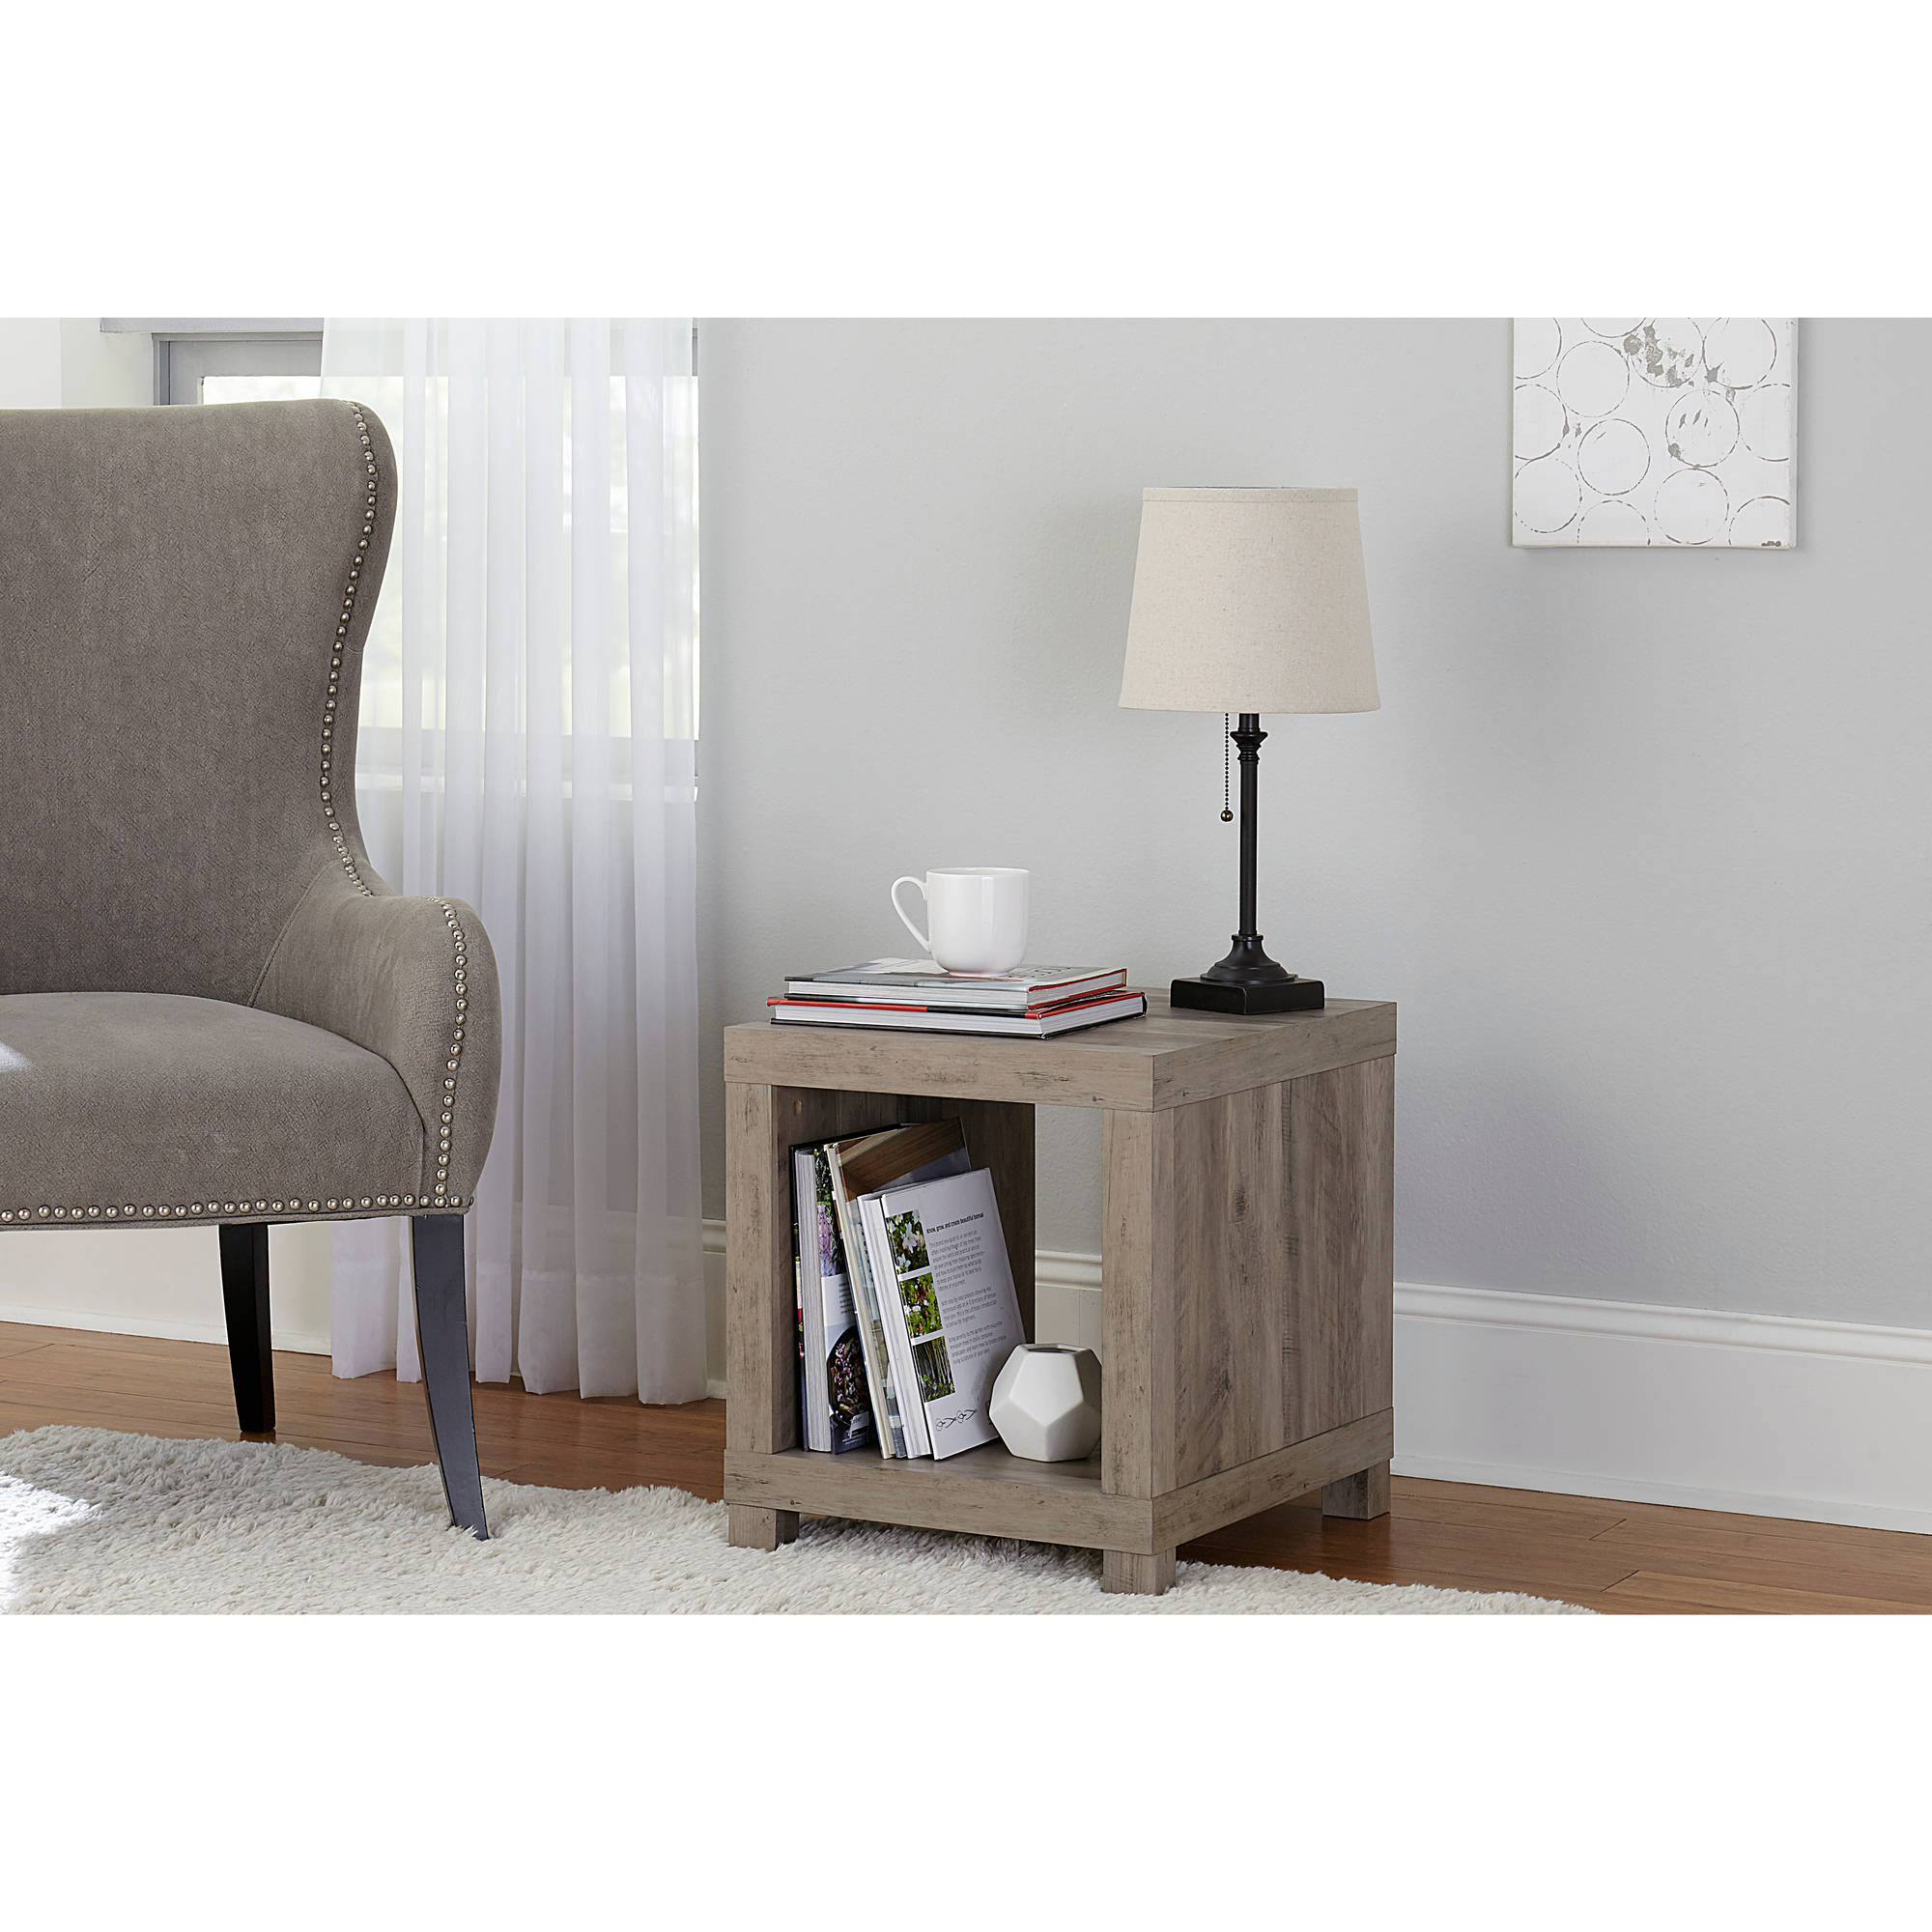 better homes and gardens accent table rustic gray white marble bistro gold lamp tablecloth narrow hallway console cabinet fold away desk living room armchair side shades coffee